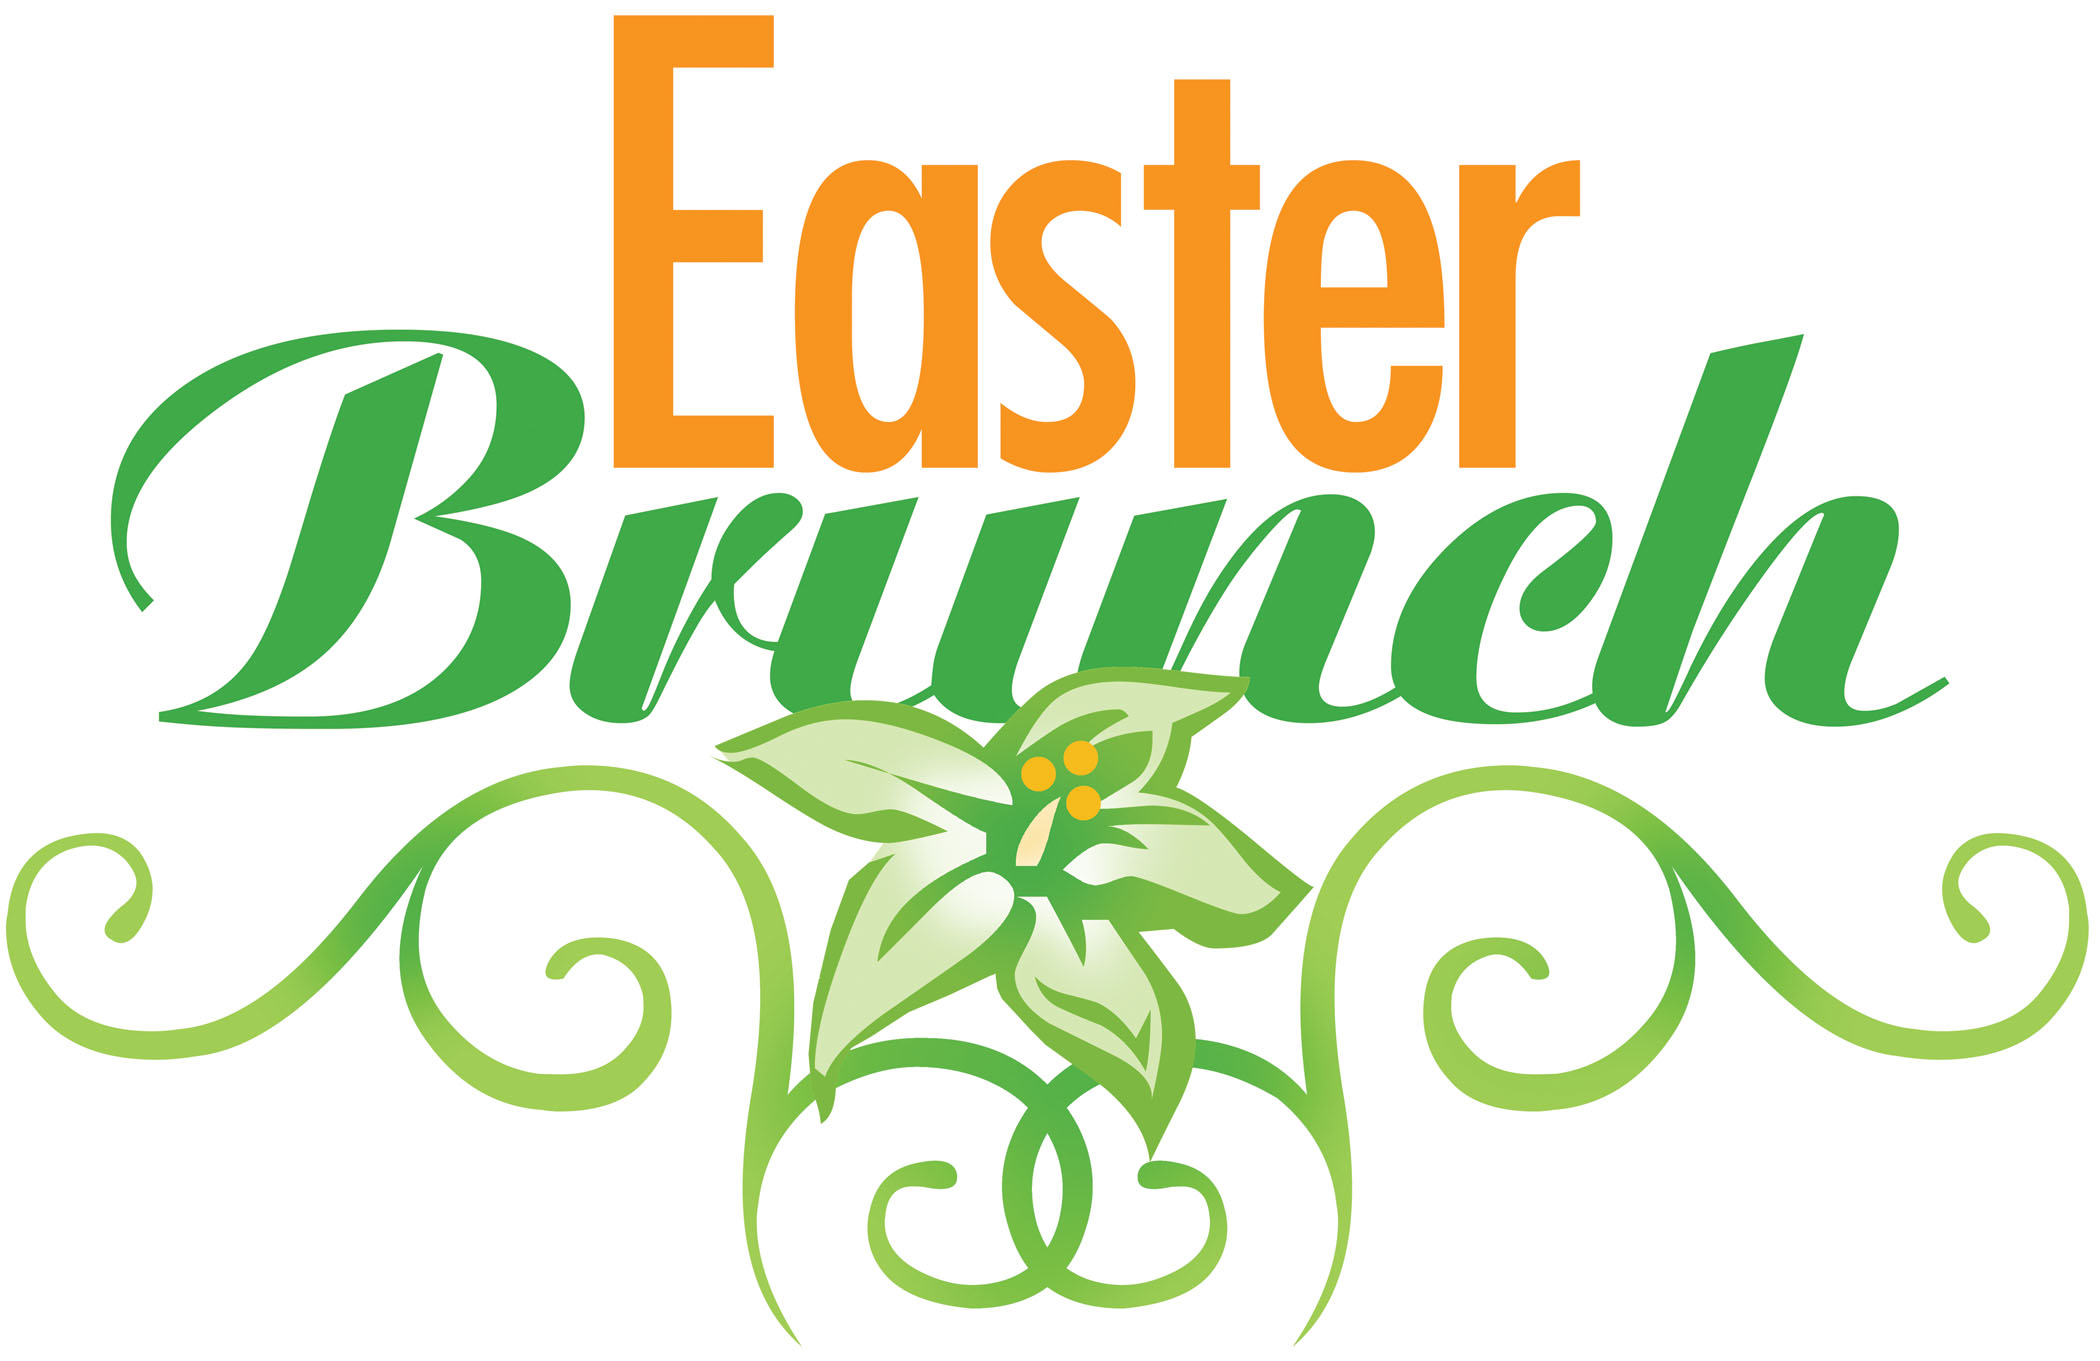 Easter Sunday Brunch Clip Art image in Vector cliparts.